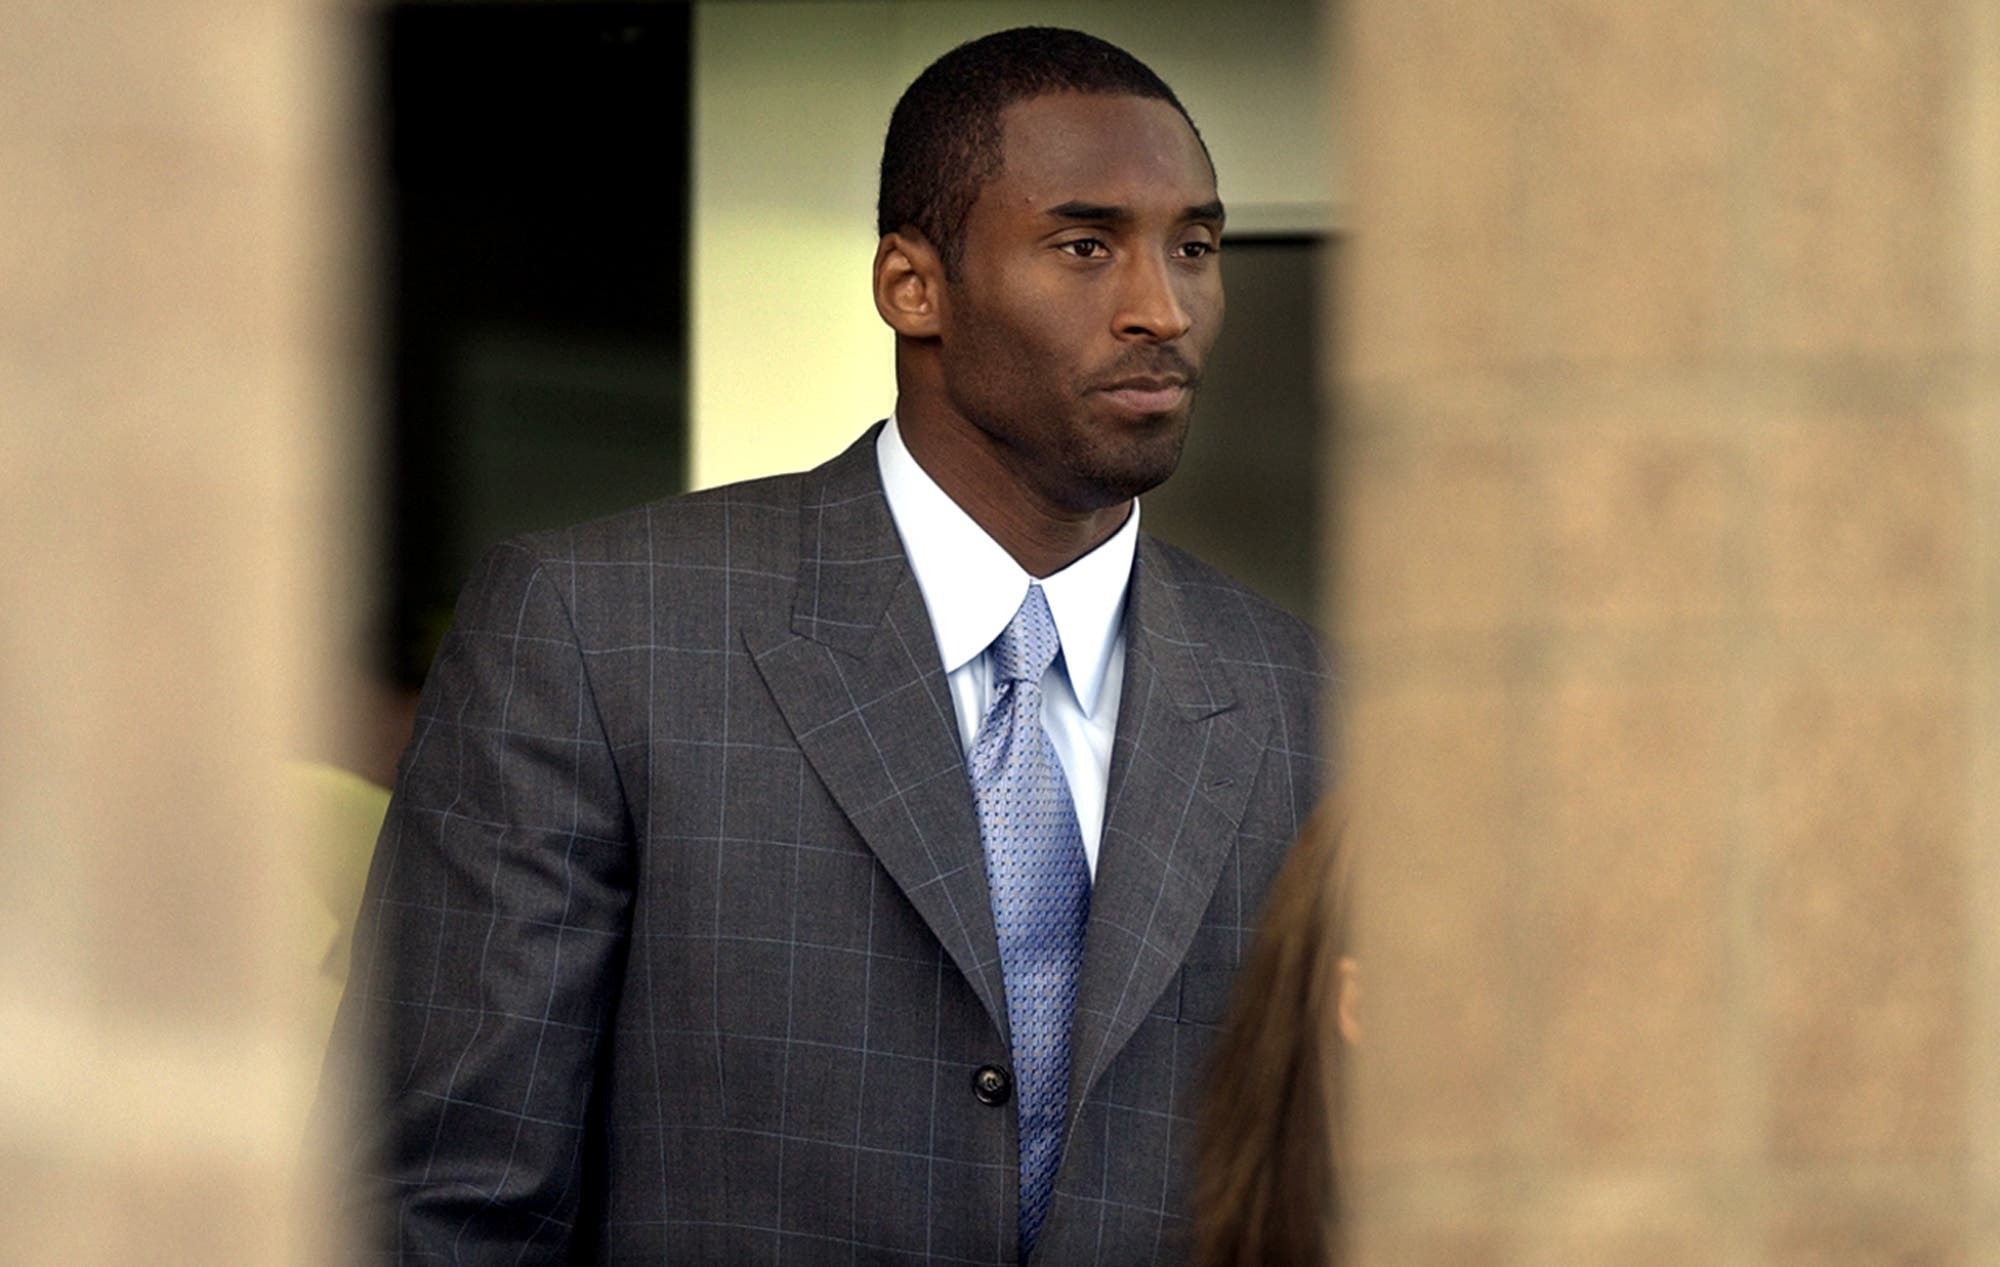 Kobe Bryant leaves court at the Justice Center Tuesday, Aug. 31, 2004 in Eagle ,Colo. after a day of jury selection in his upcoming sexual assault trial. (AP)